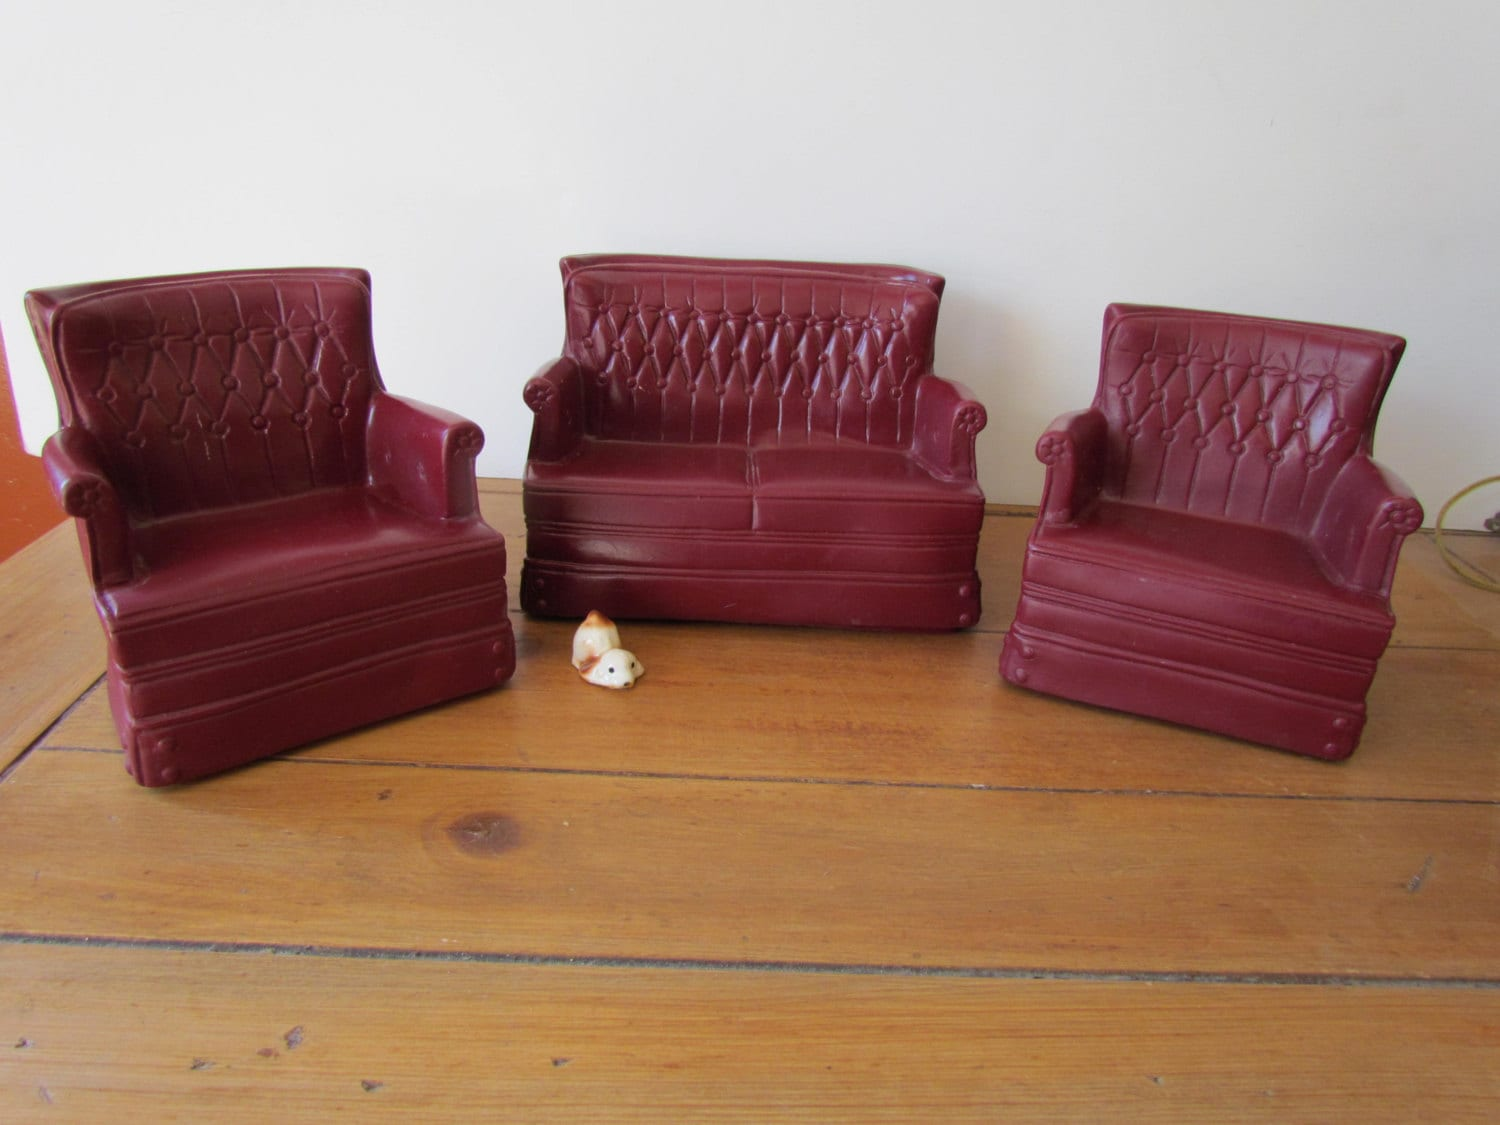 1970s Sindy Doll House Living Room Furniture By Lunchladyvintage